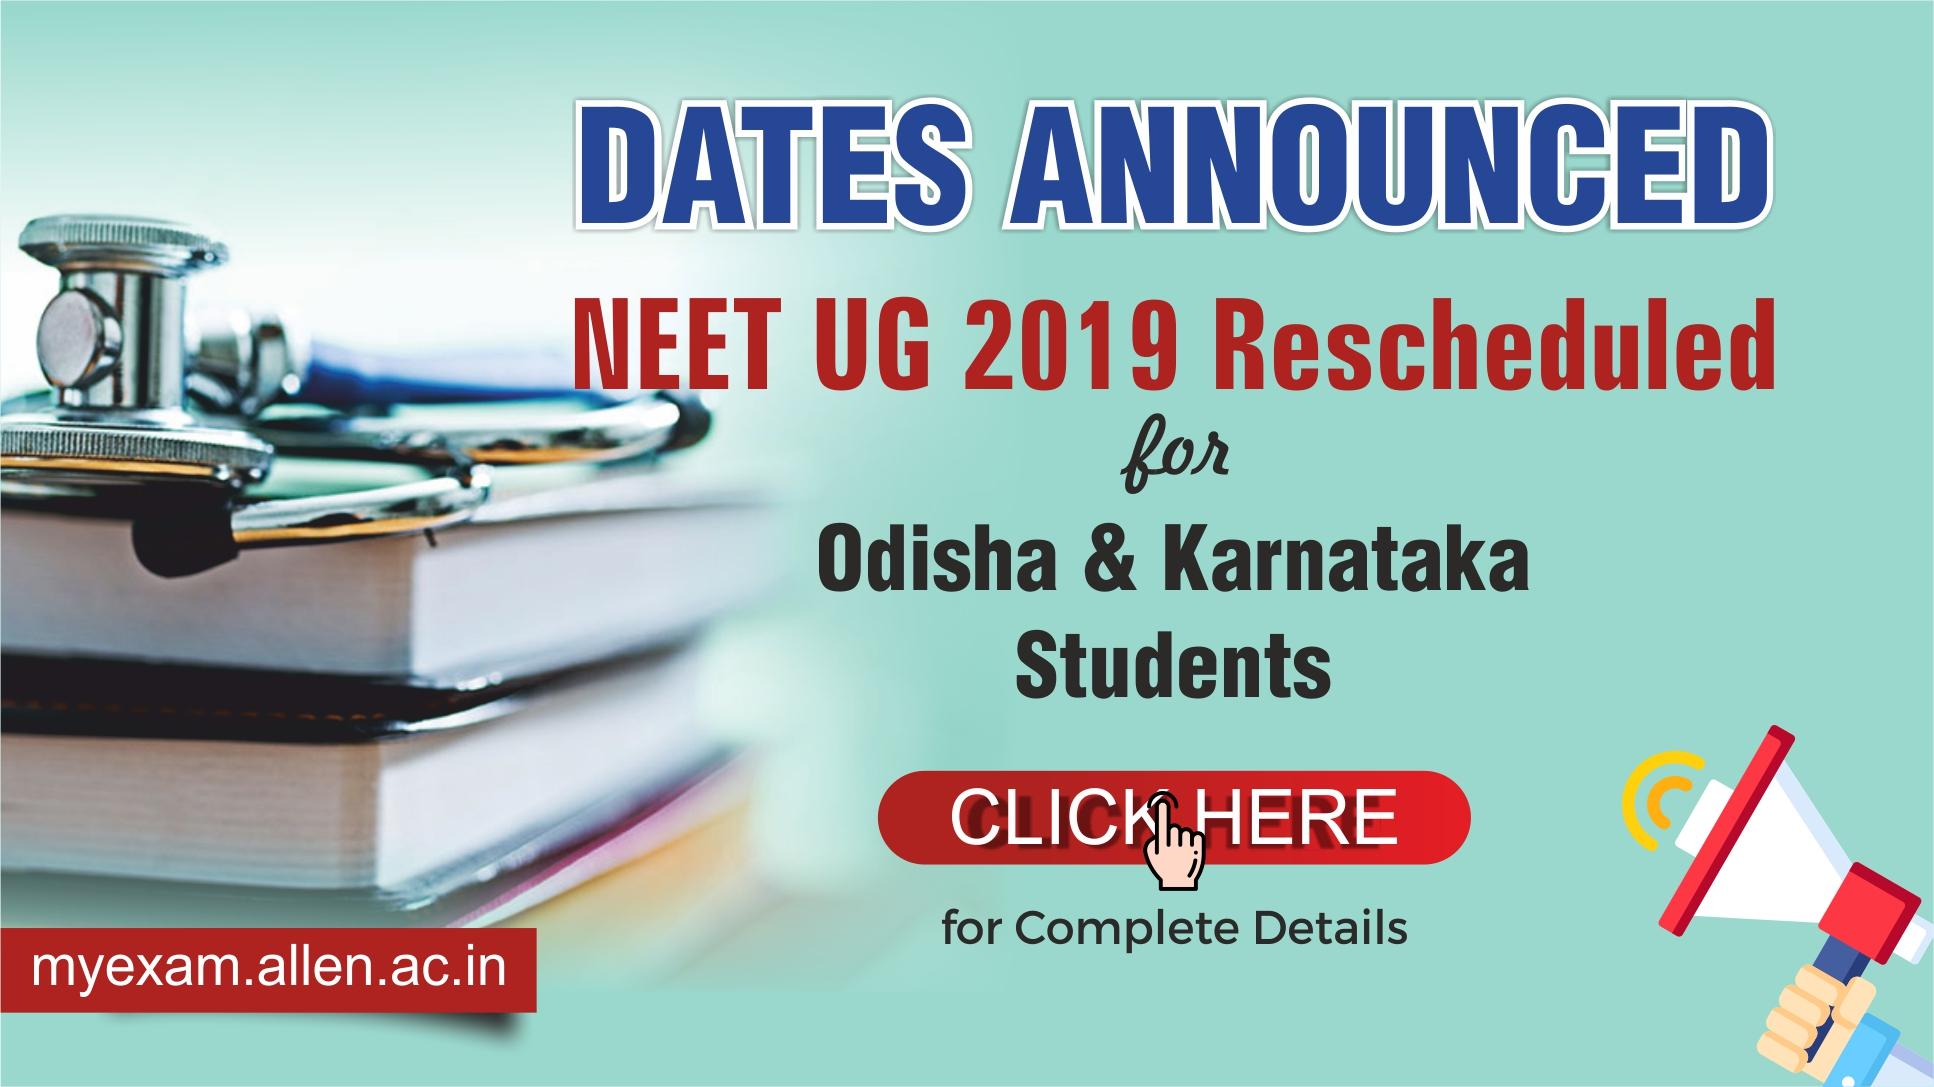 Rescheduling of the NEET UG 2019 exam